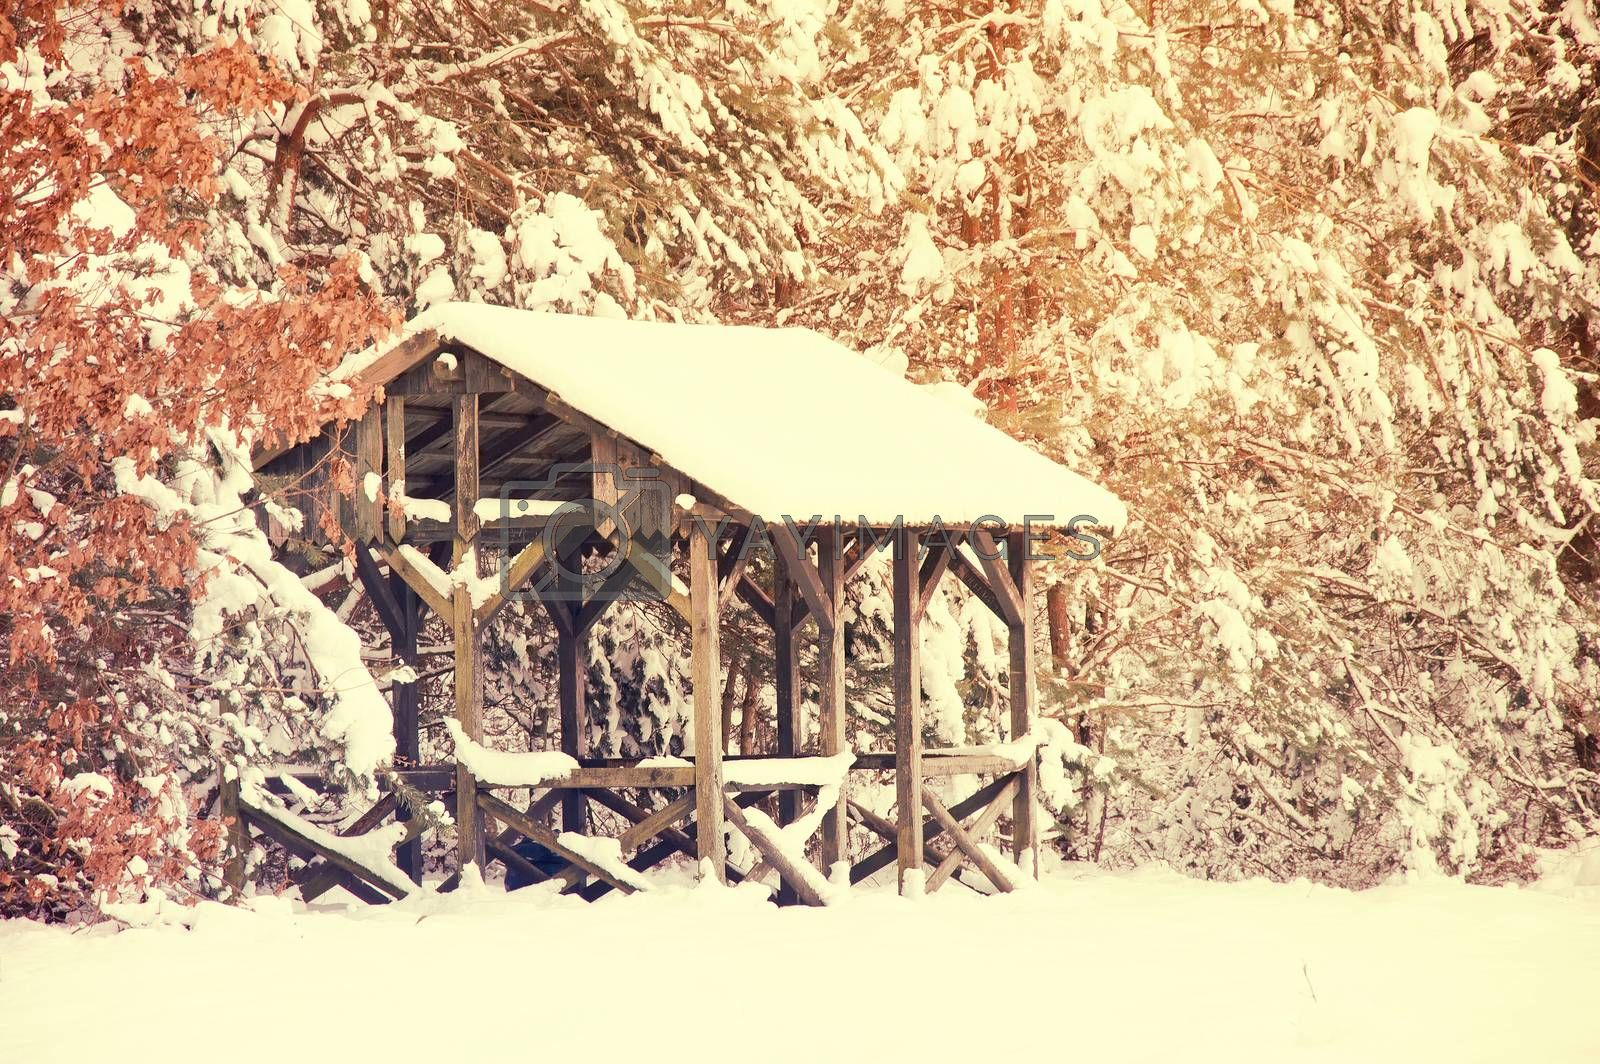 Winter conceptual image. Winter in the forest. Trees and small wooden house covered with snow. Pastel colors picture.